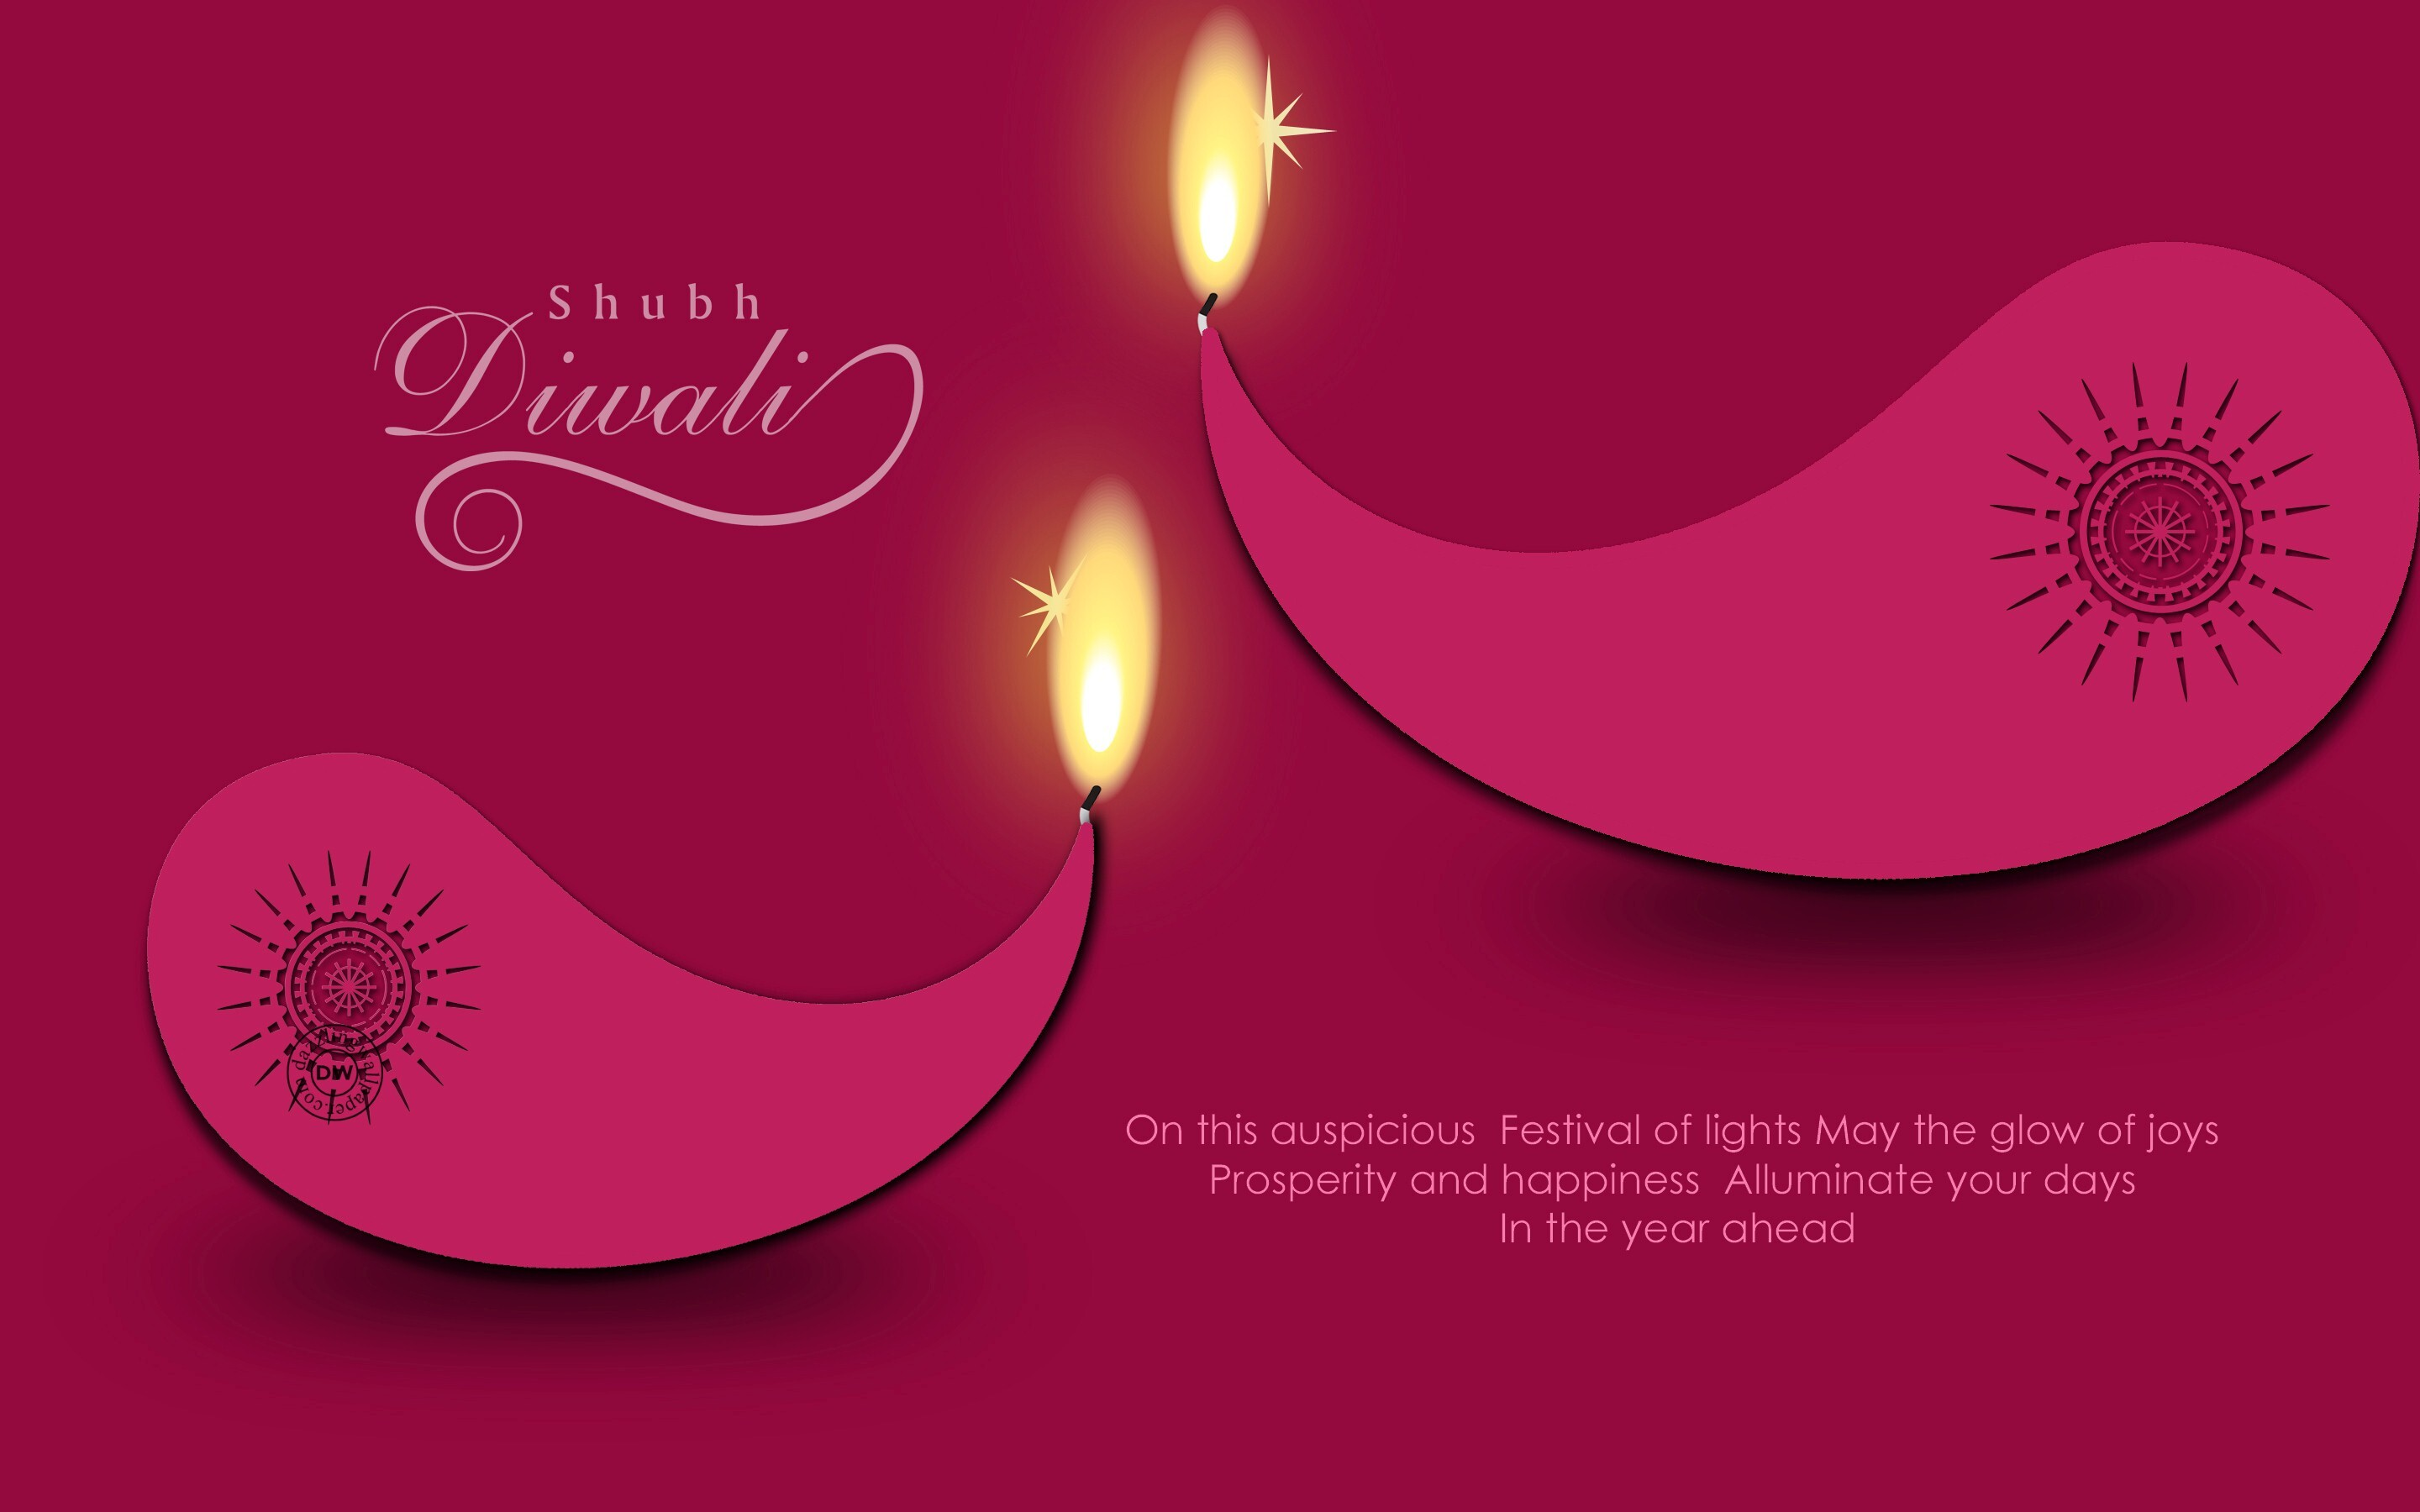 Must see Wallpaper High Resolution Diwali - Subh_Diwali_High_Quality_Images  Best Photo Reference_1653.jpg